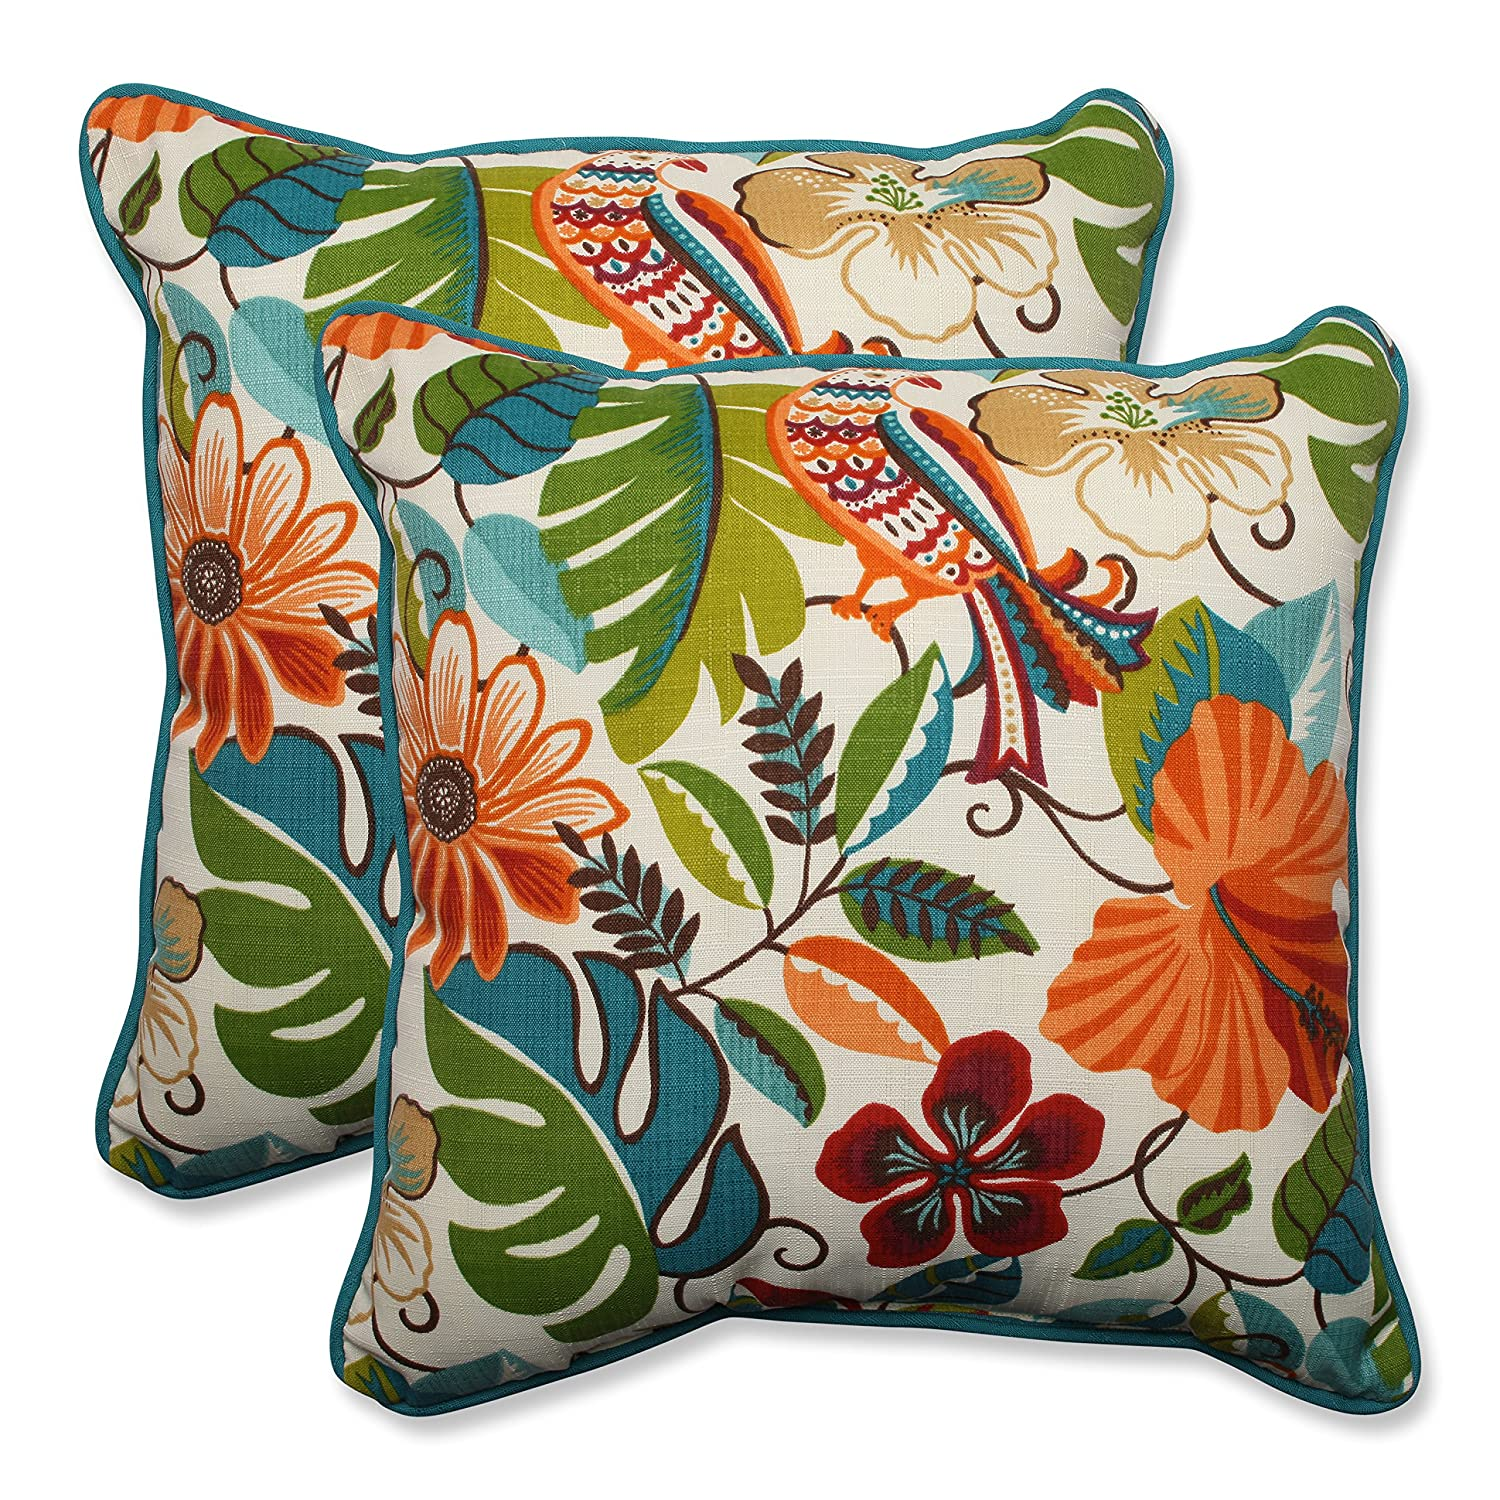 Pillow Perfect Outdoor/Indoor Lensing Jungle Throw Pillow (Set of 2), 18.5-Inch Inc. 580609